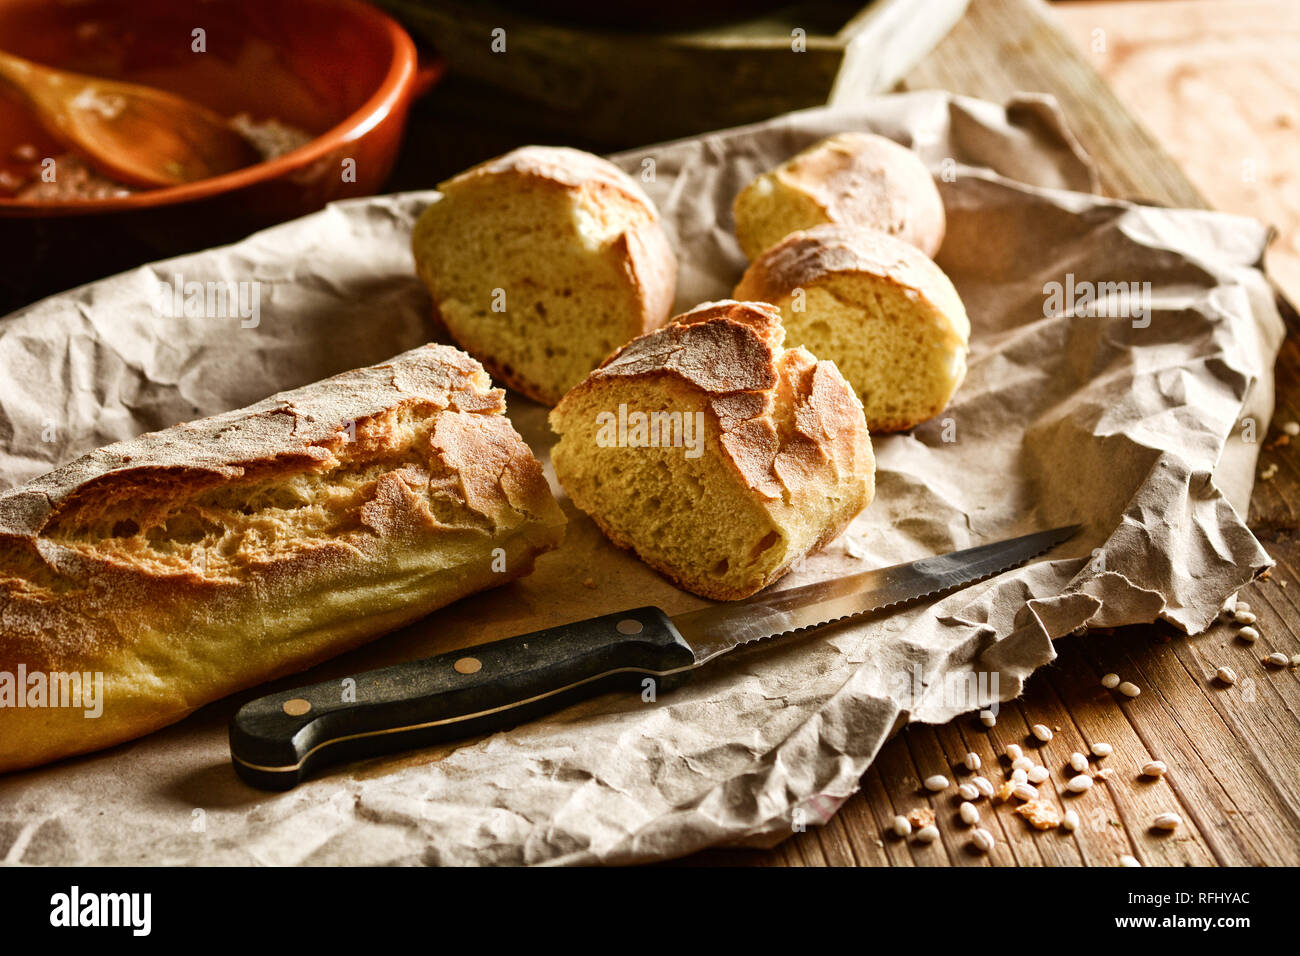 hot sliced bread on wooden table - rustic effect - closeup - Stock Image